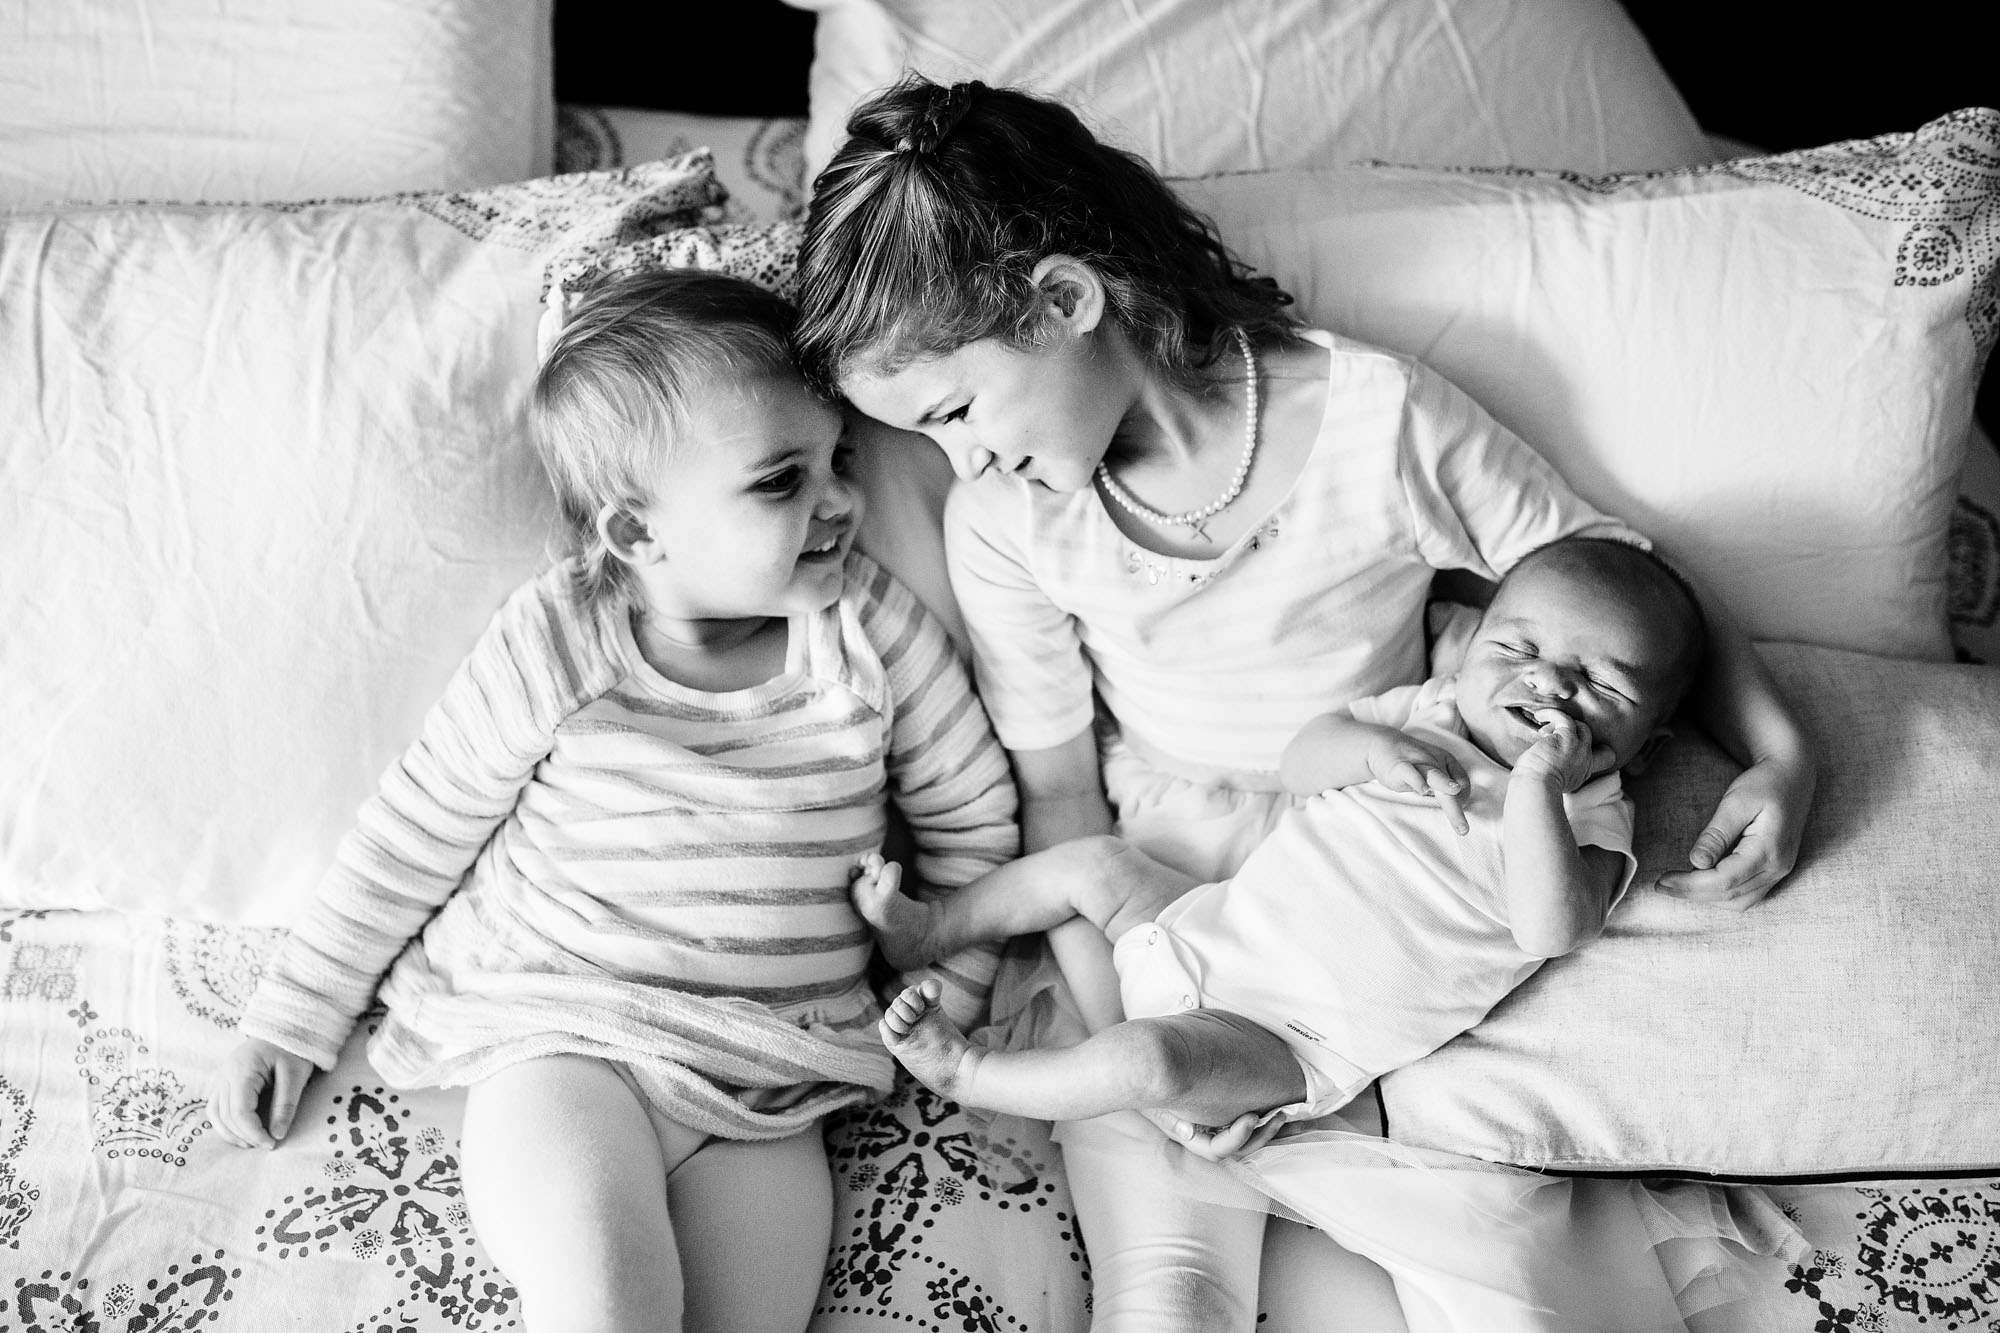 Siblings connect on a bed during a lifestyle newborn photo session with Amy Wright, a photographer based out of Sacramento, California.